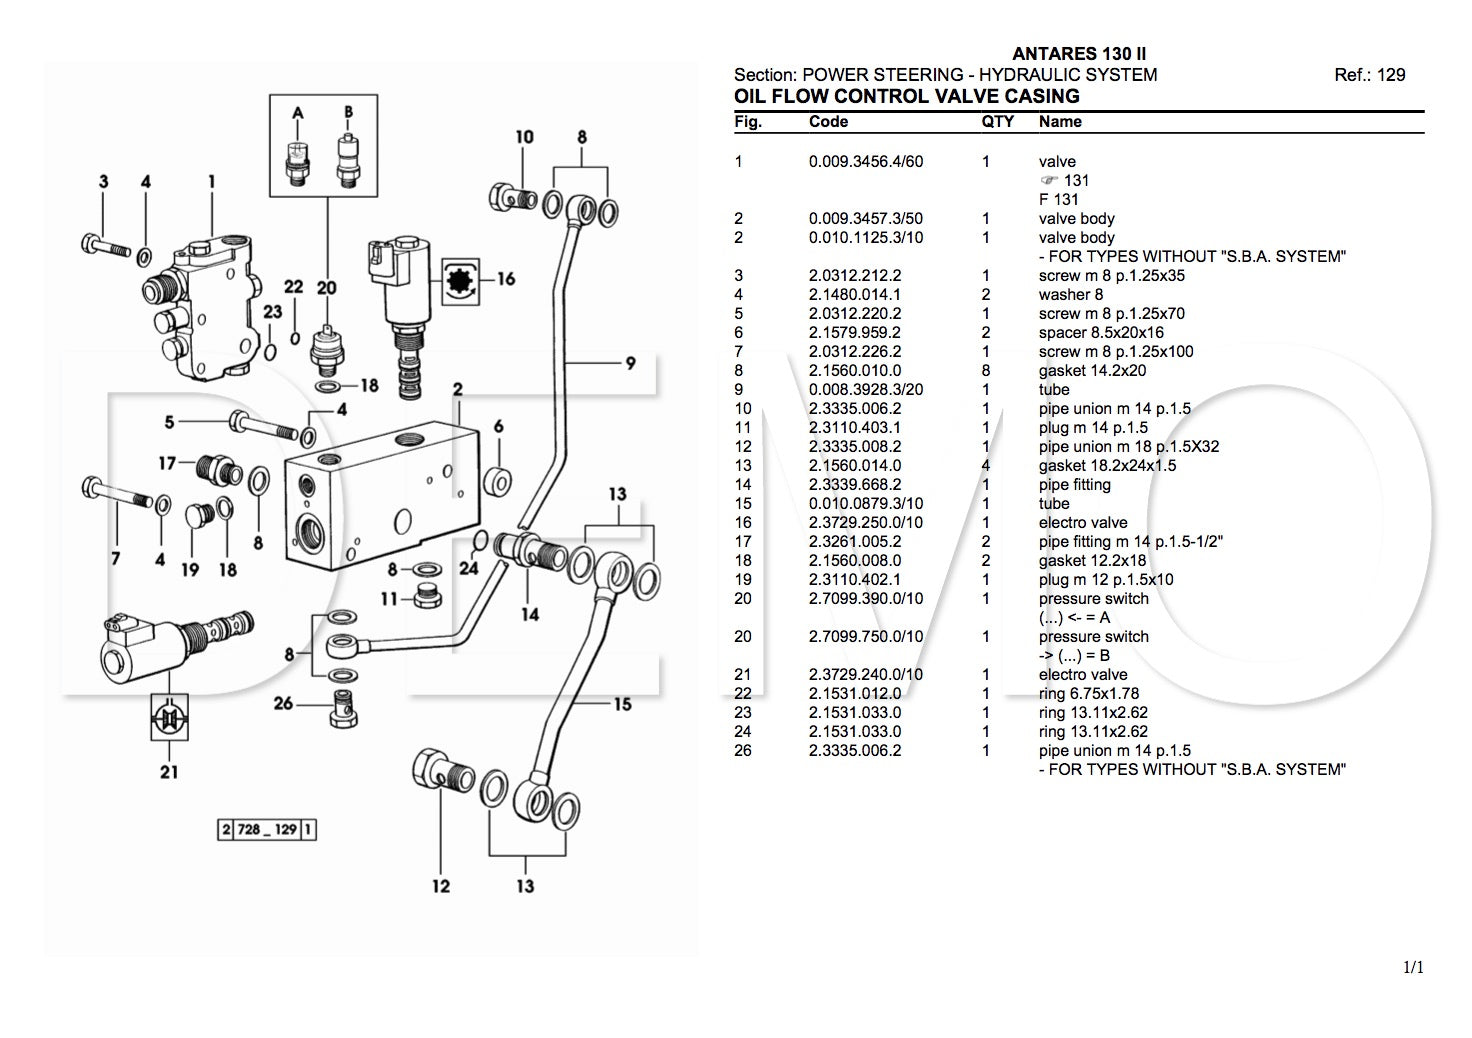 Same Aster 70 Parts Catalogue, PDF Manual, Parts Catalog